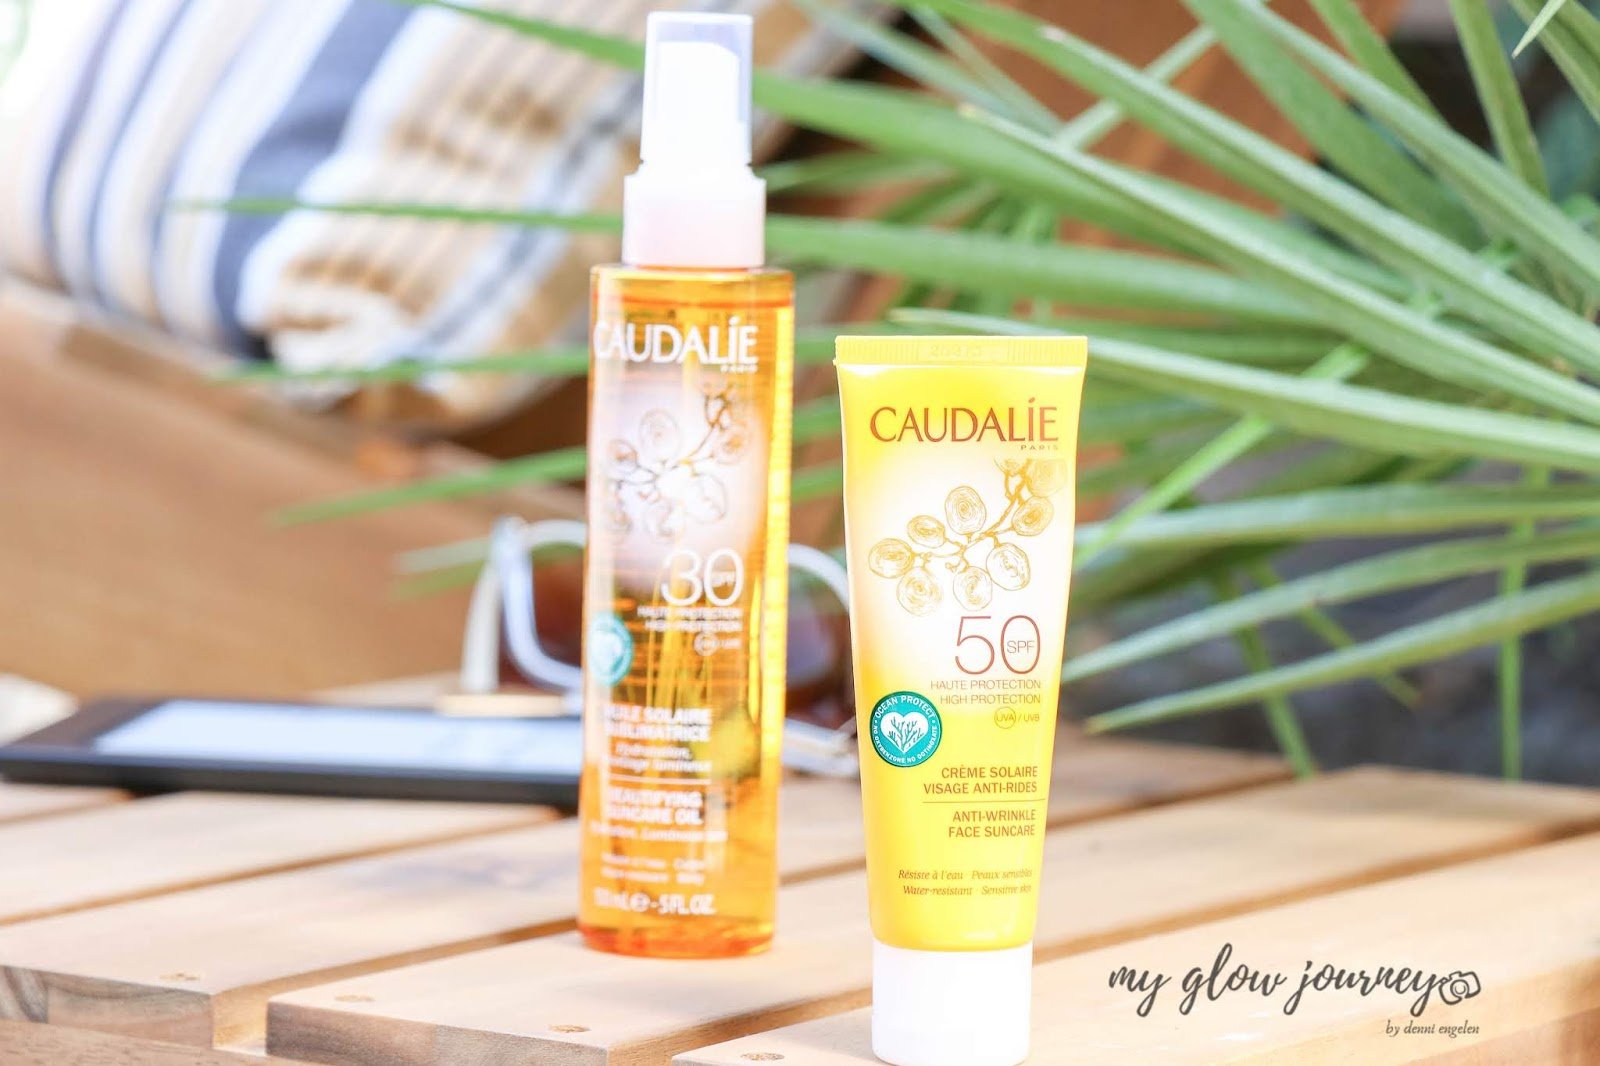 Caudalie Anti-wrinkle Face Suncare SPF50